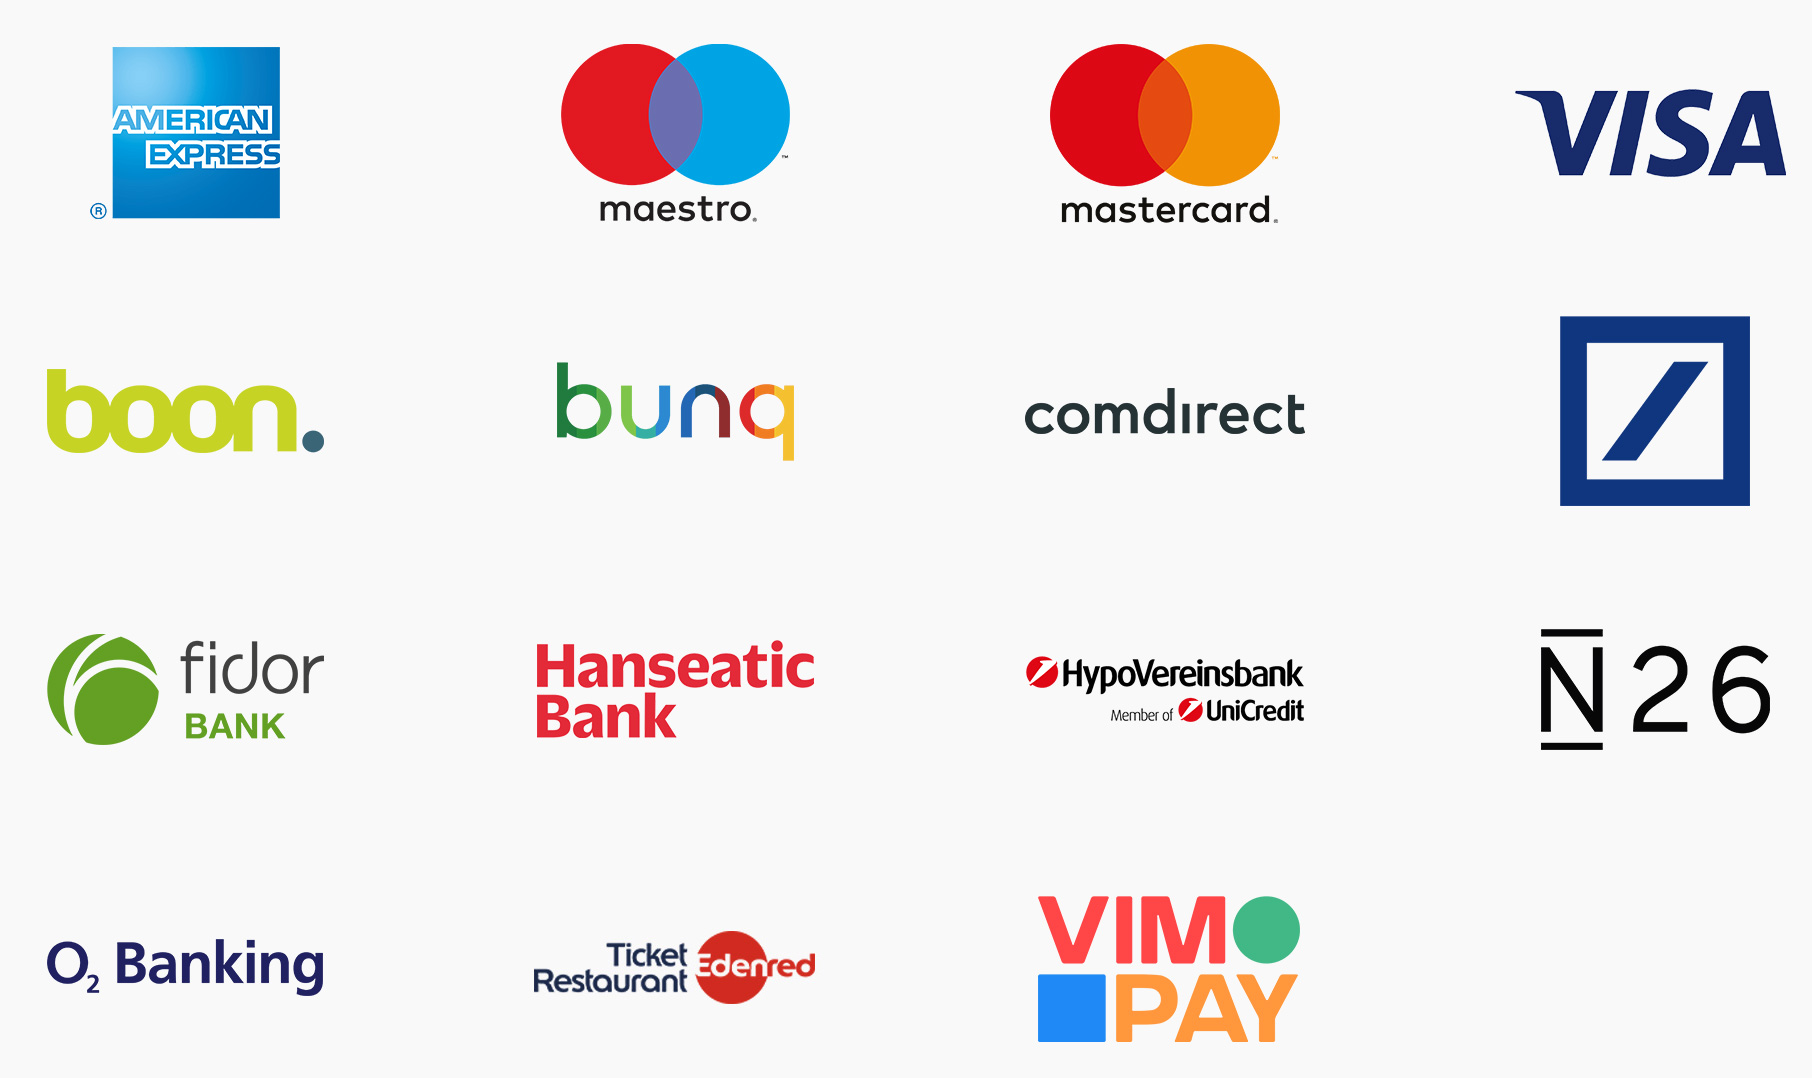 Tarjetas y bancos compatibles con Apple Pay en Alemania